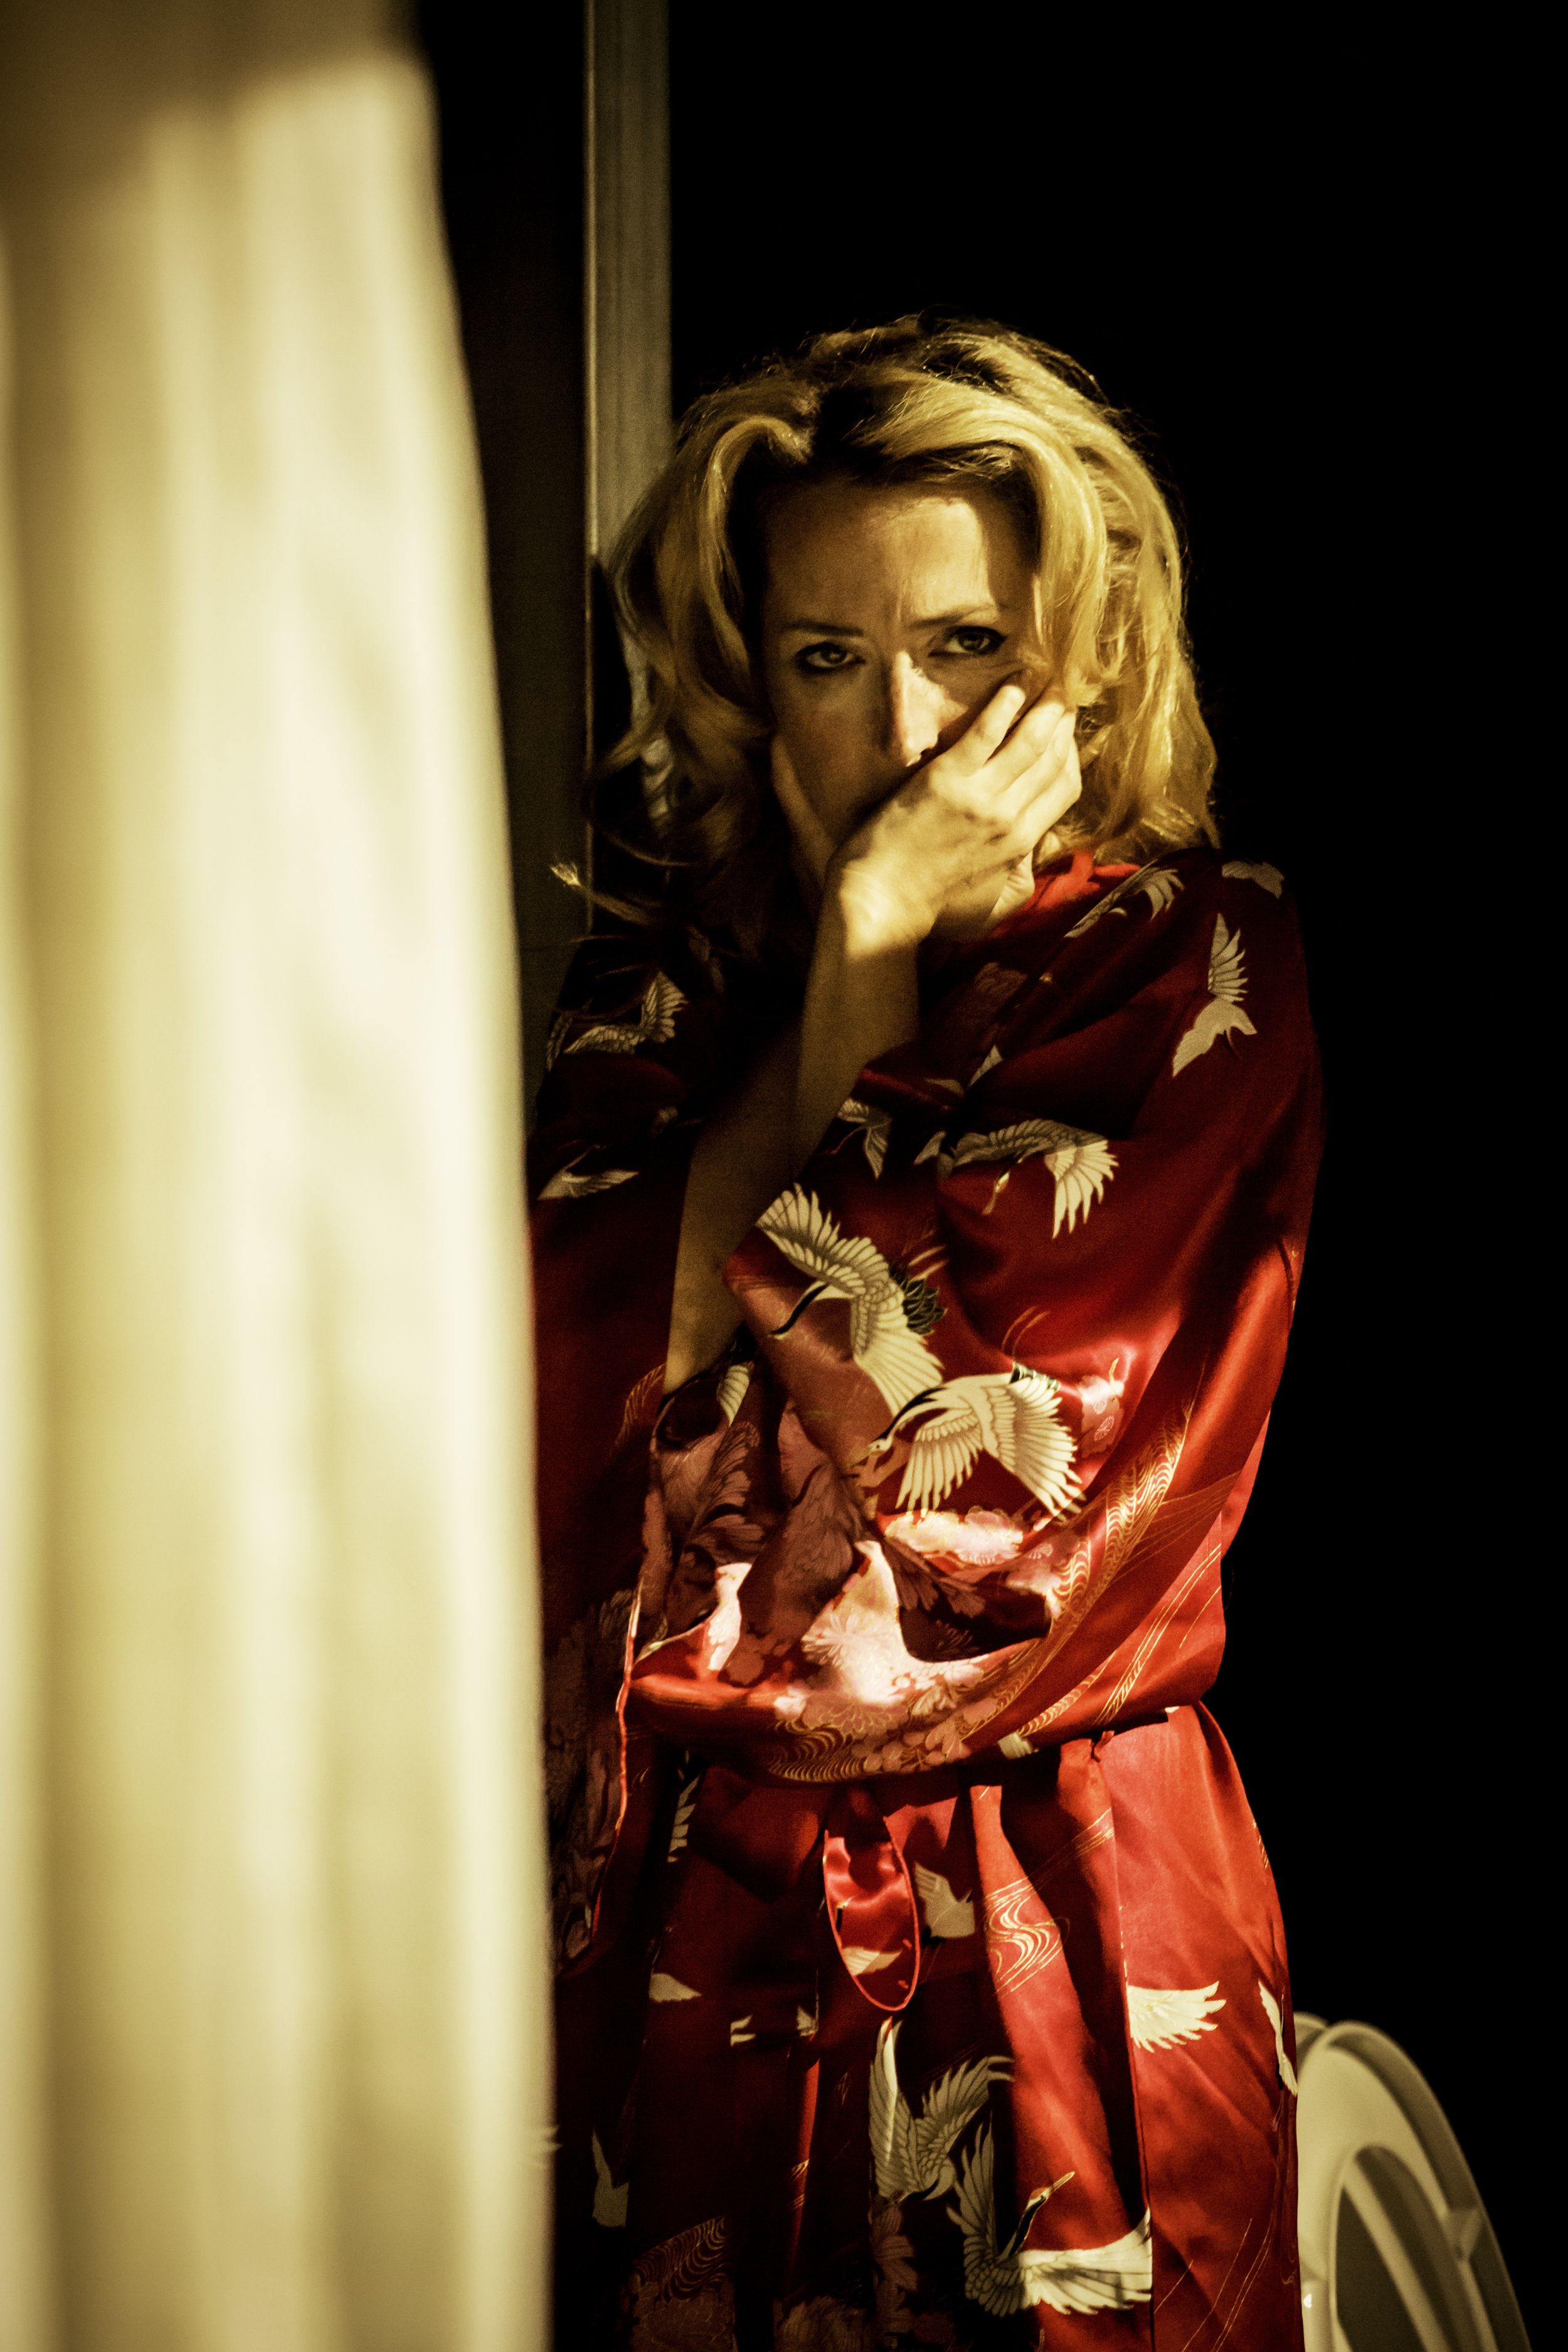 6_Gillian_Anderson_as_Blanche_DuBois_in_A_Streetcar_Named_Desire_at_the_Young_Vic_Photo_by_Johan_Persson-04897-1.jpg